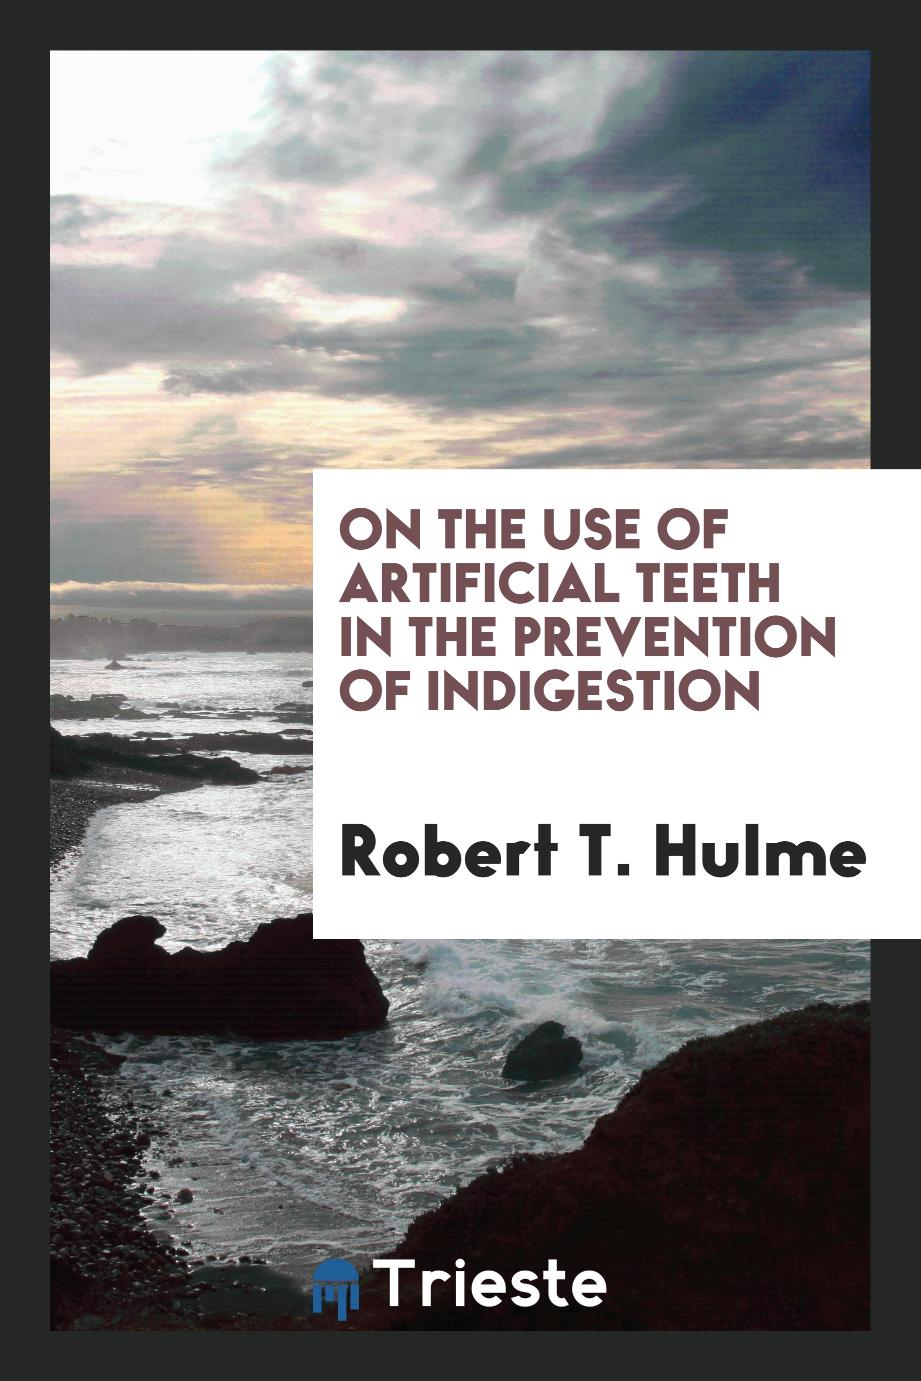 On the Use of Artificial Teeth in the Prevention of Indigestion